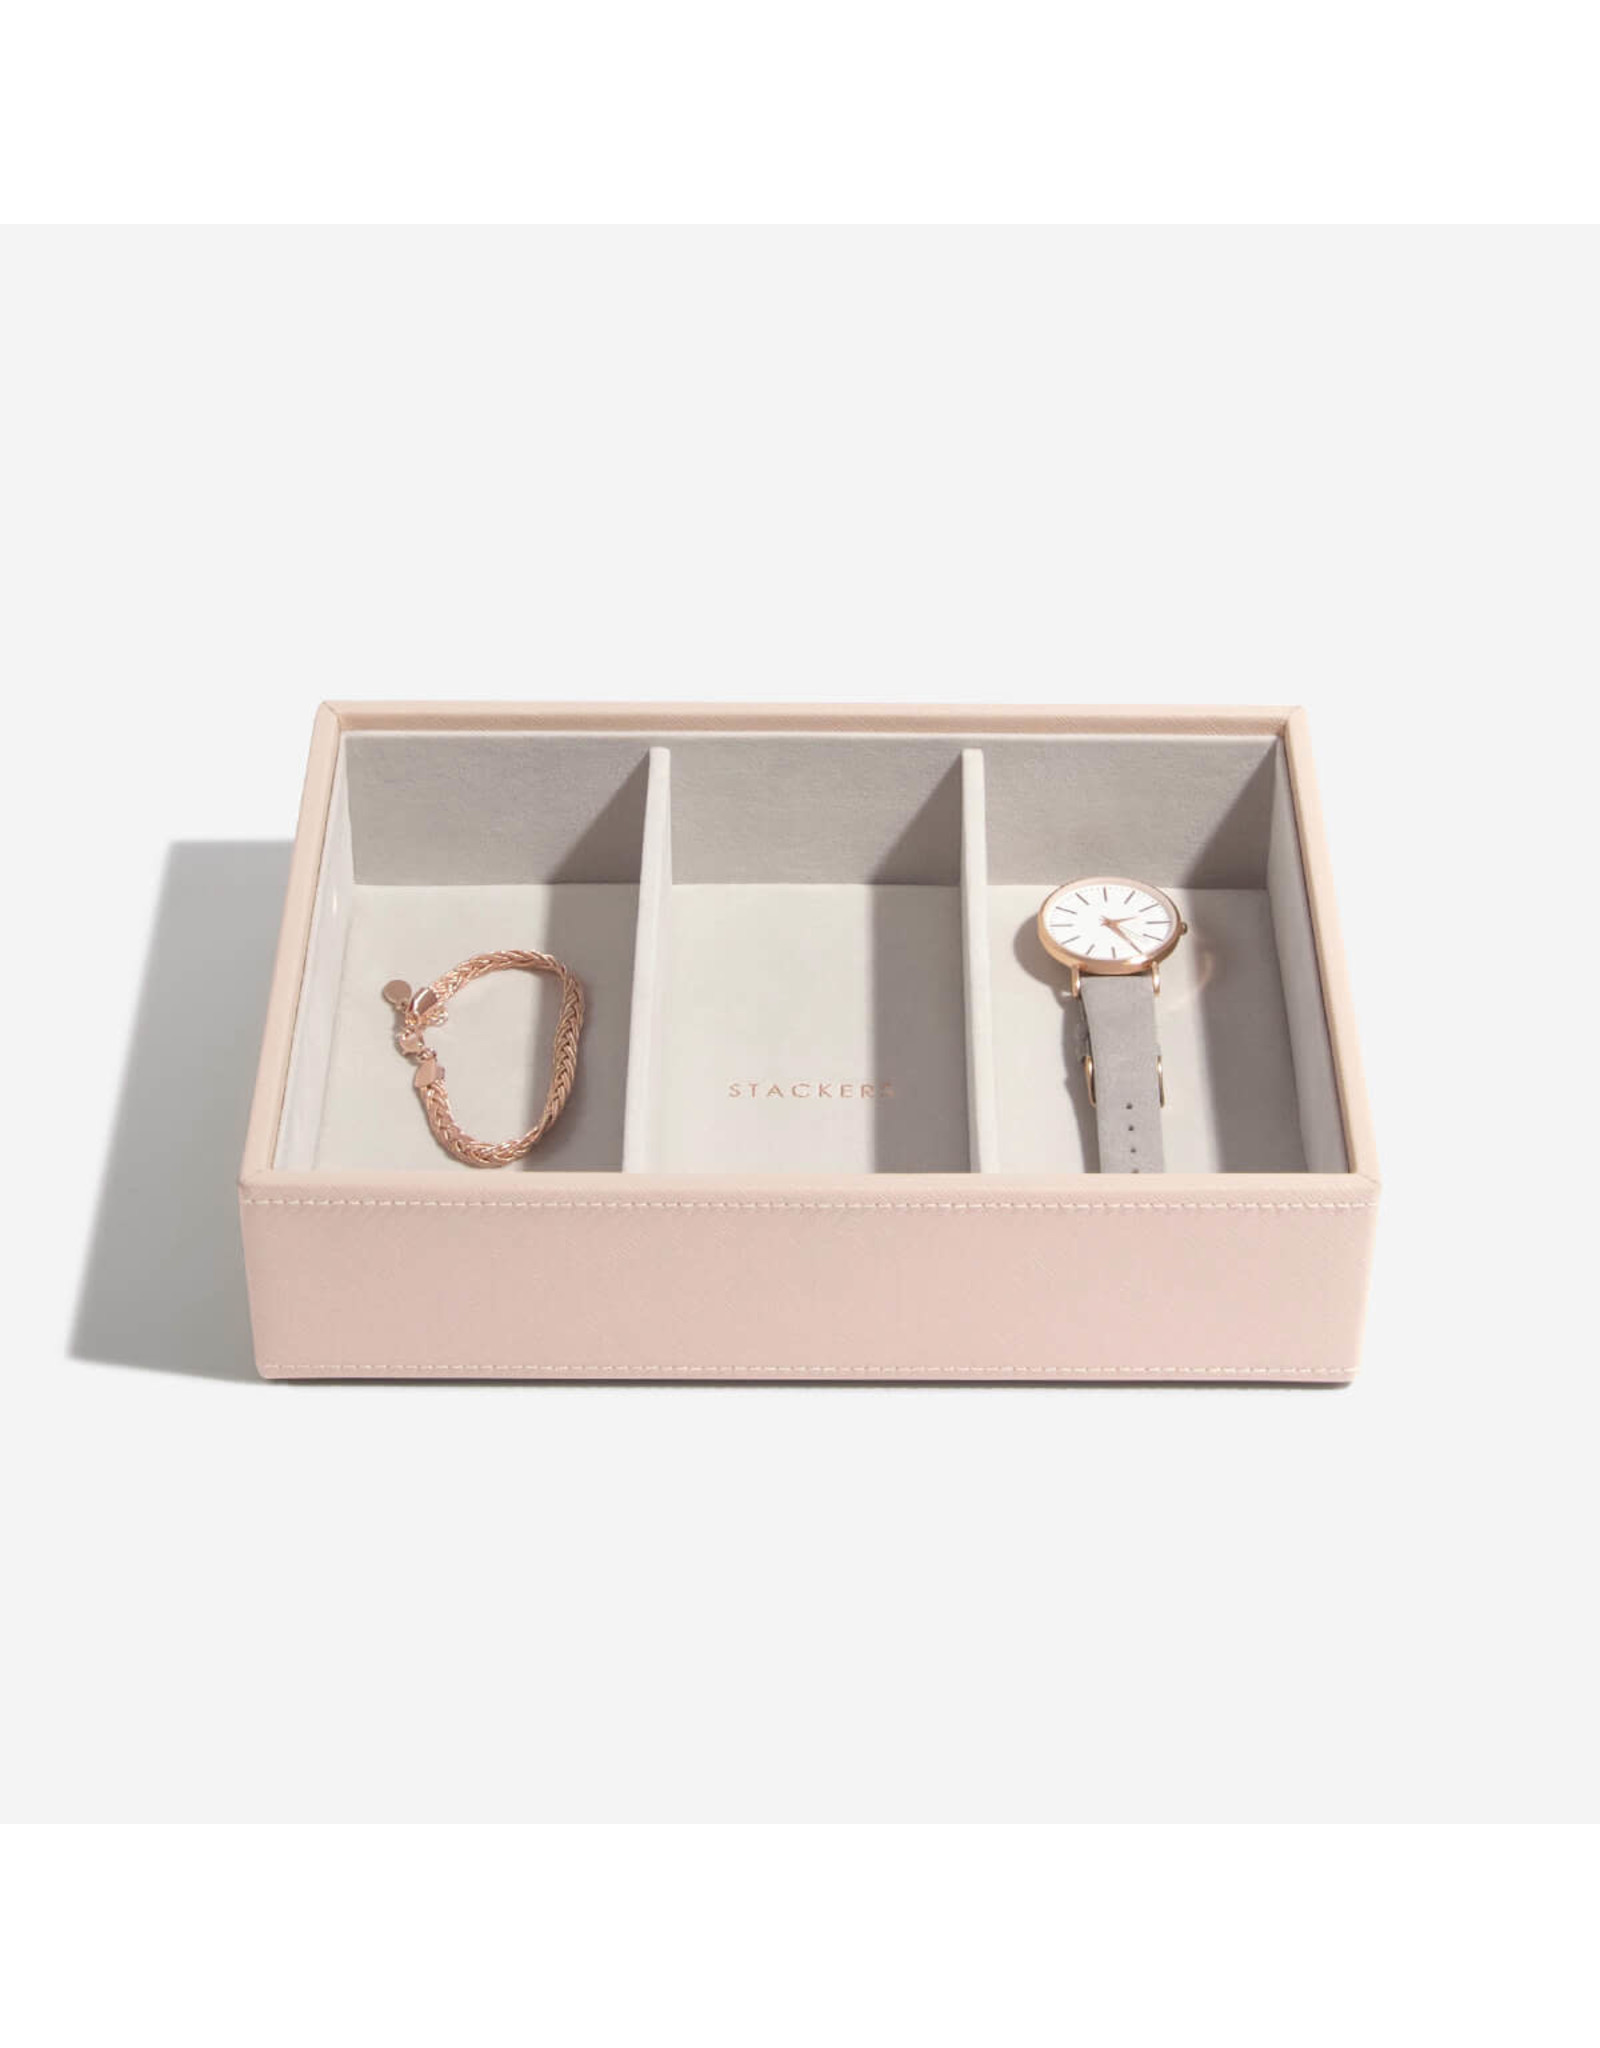 Stackers Blush - Classic - 3 Section Hoog